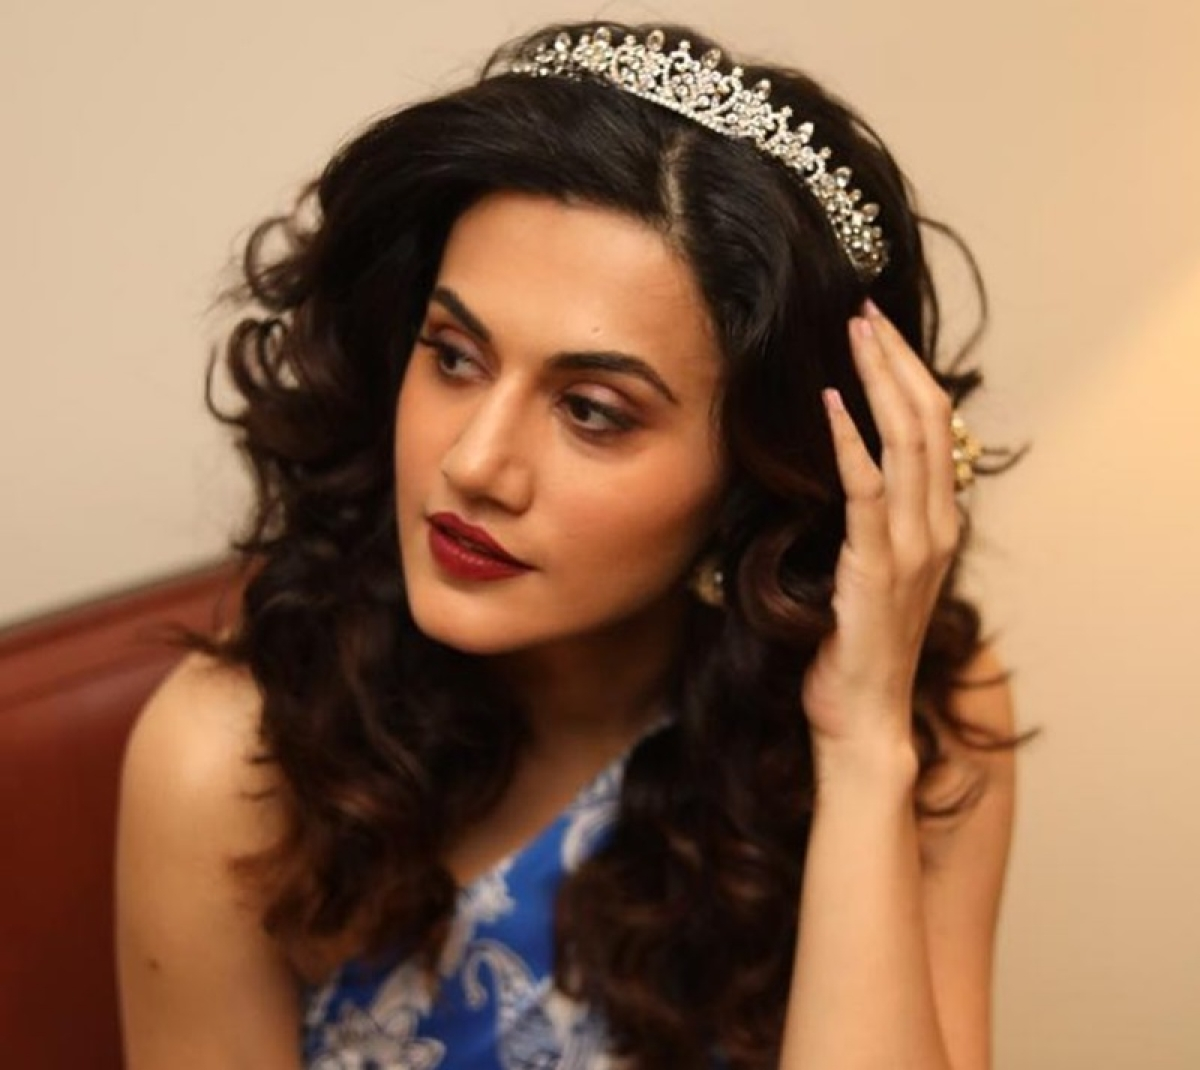 Taapsee Pannu reveals Varun Dhawan is the biggest 'Diva' in Bollywood